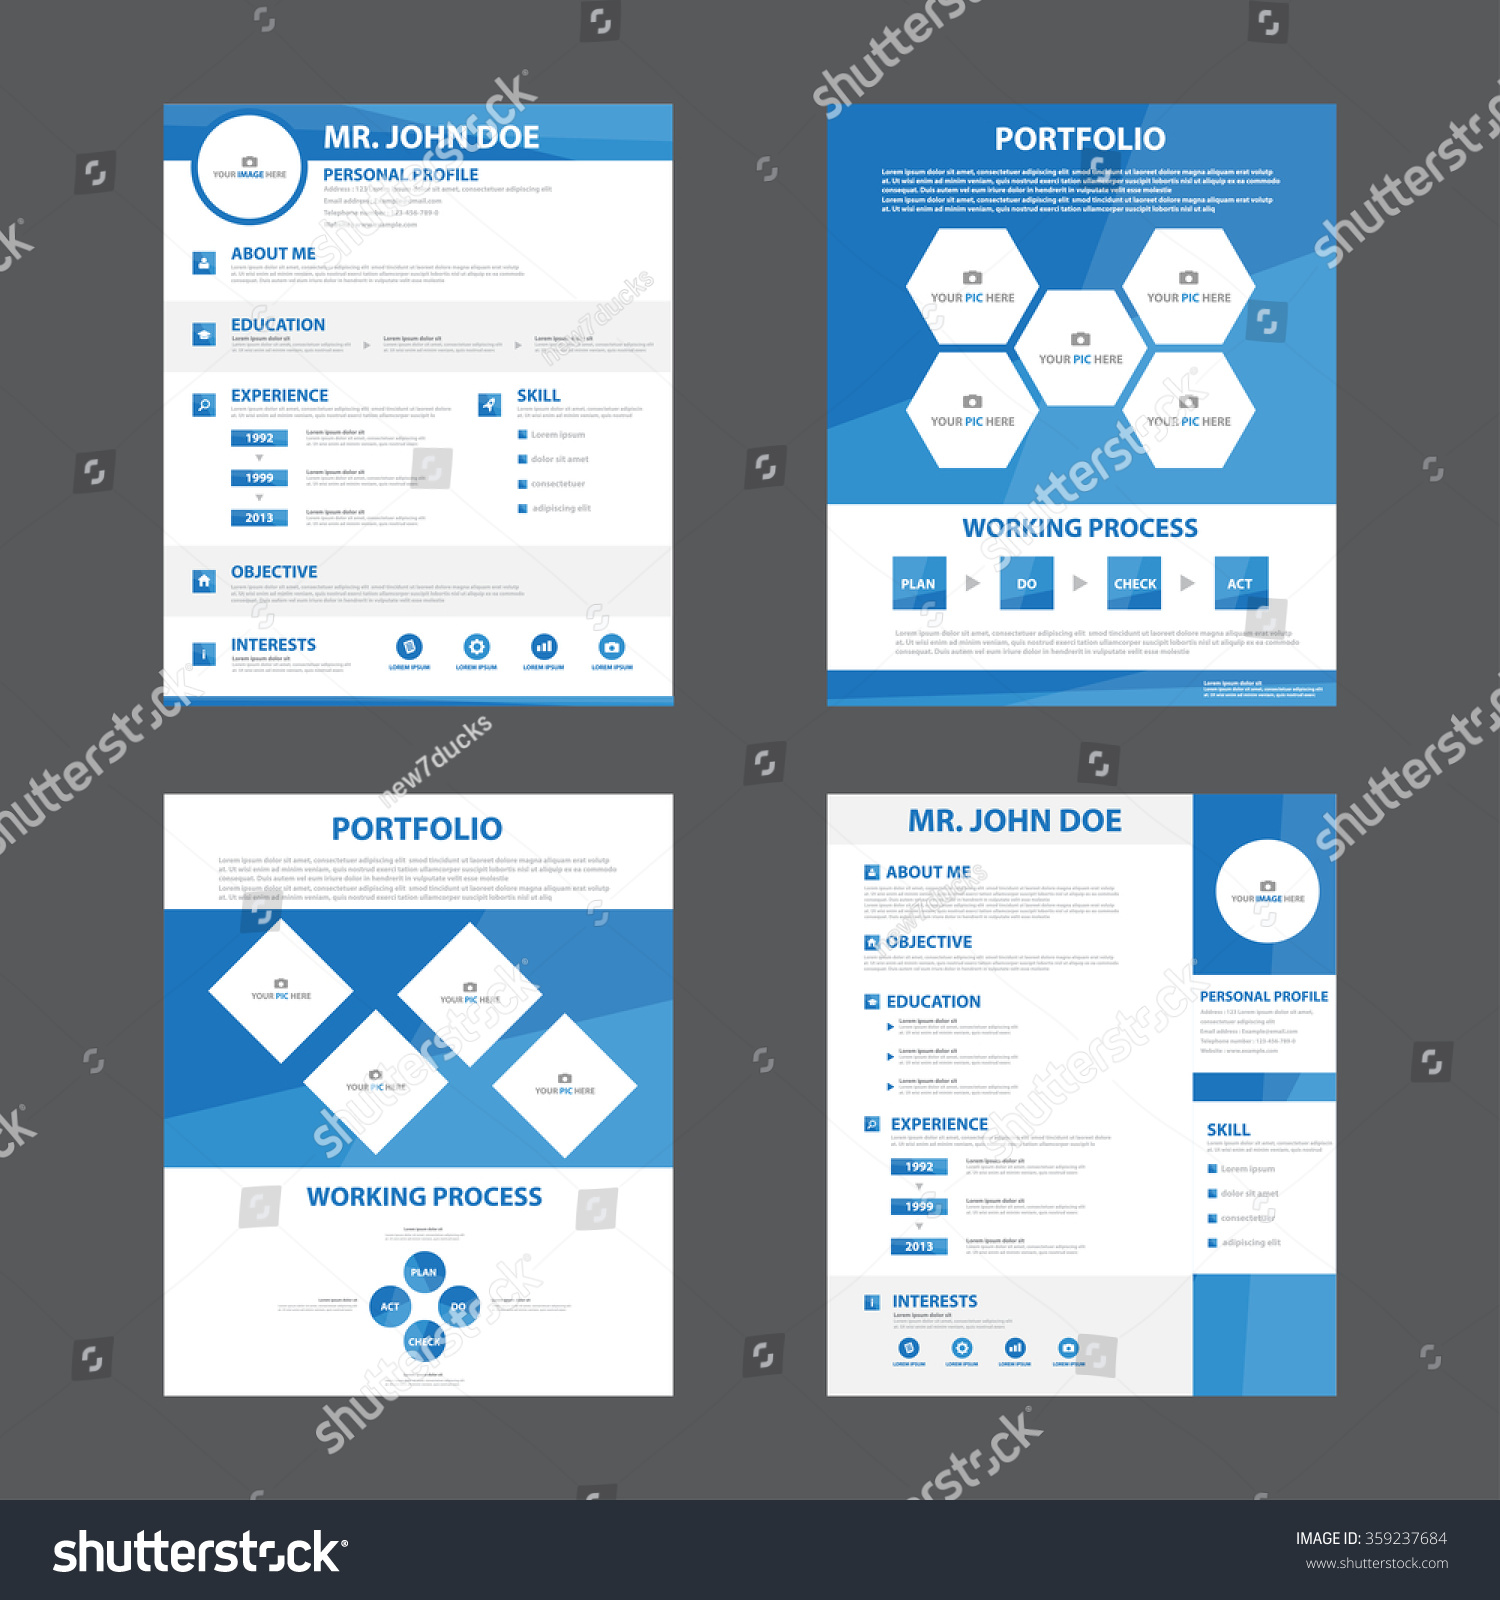 4 smart creative resume business profile cv vitae template layout flat design for job